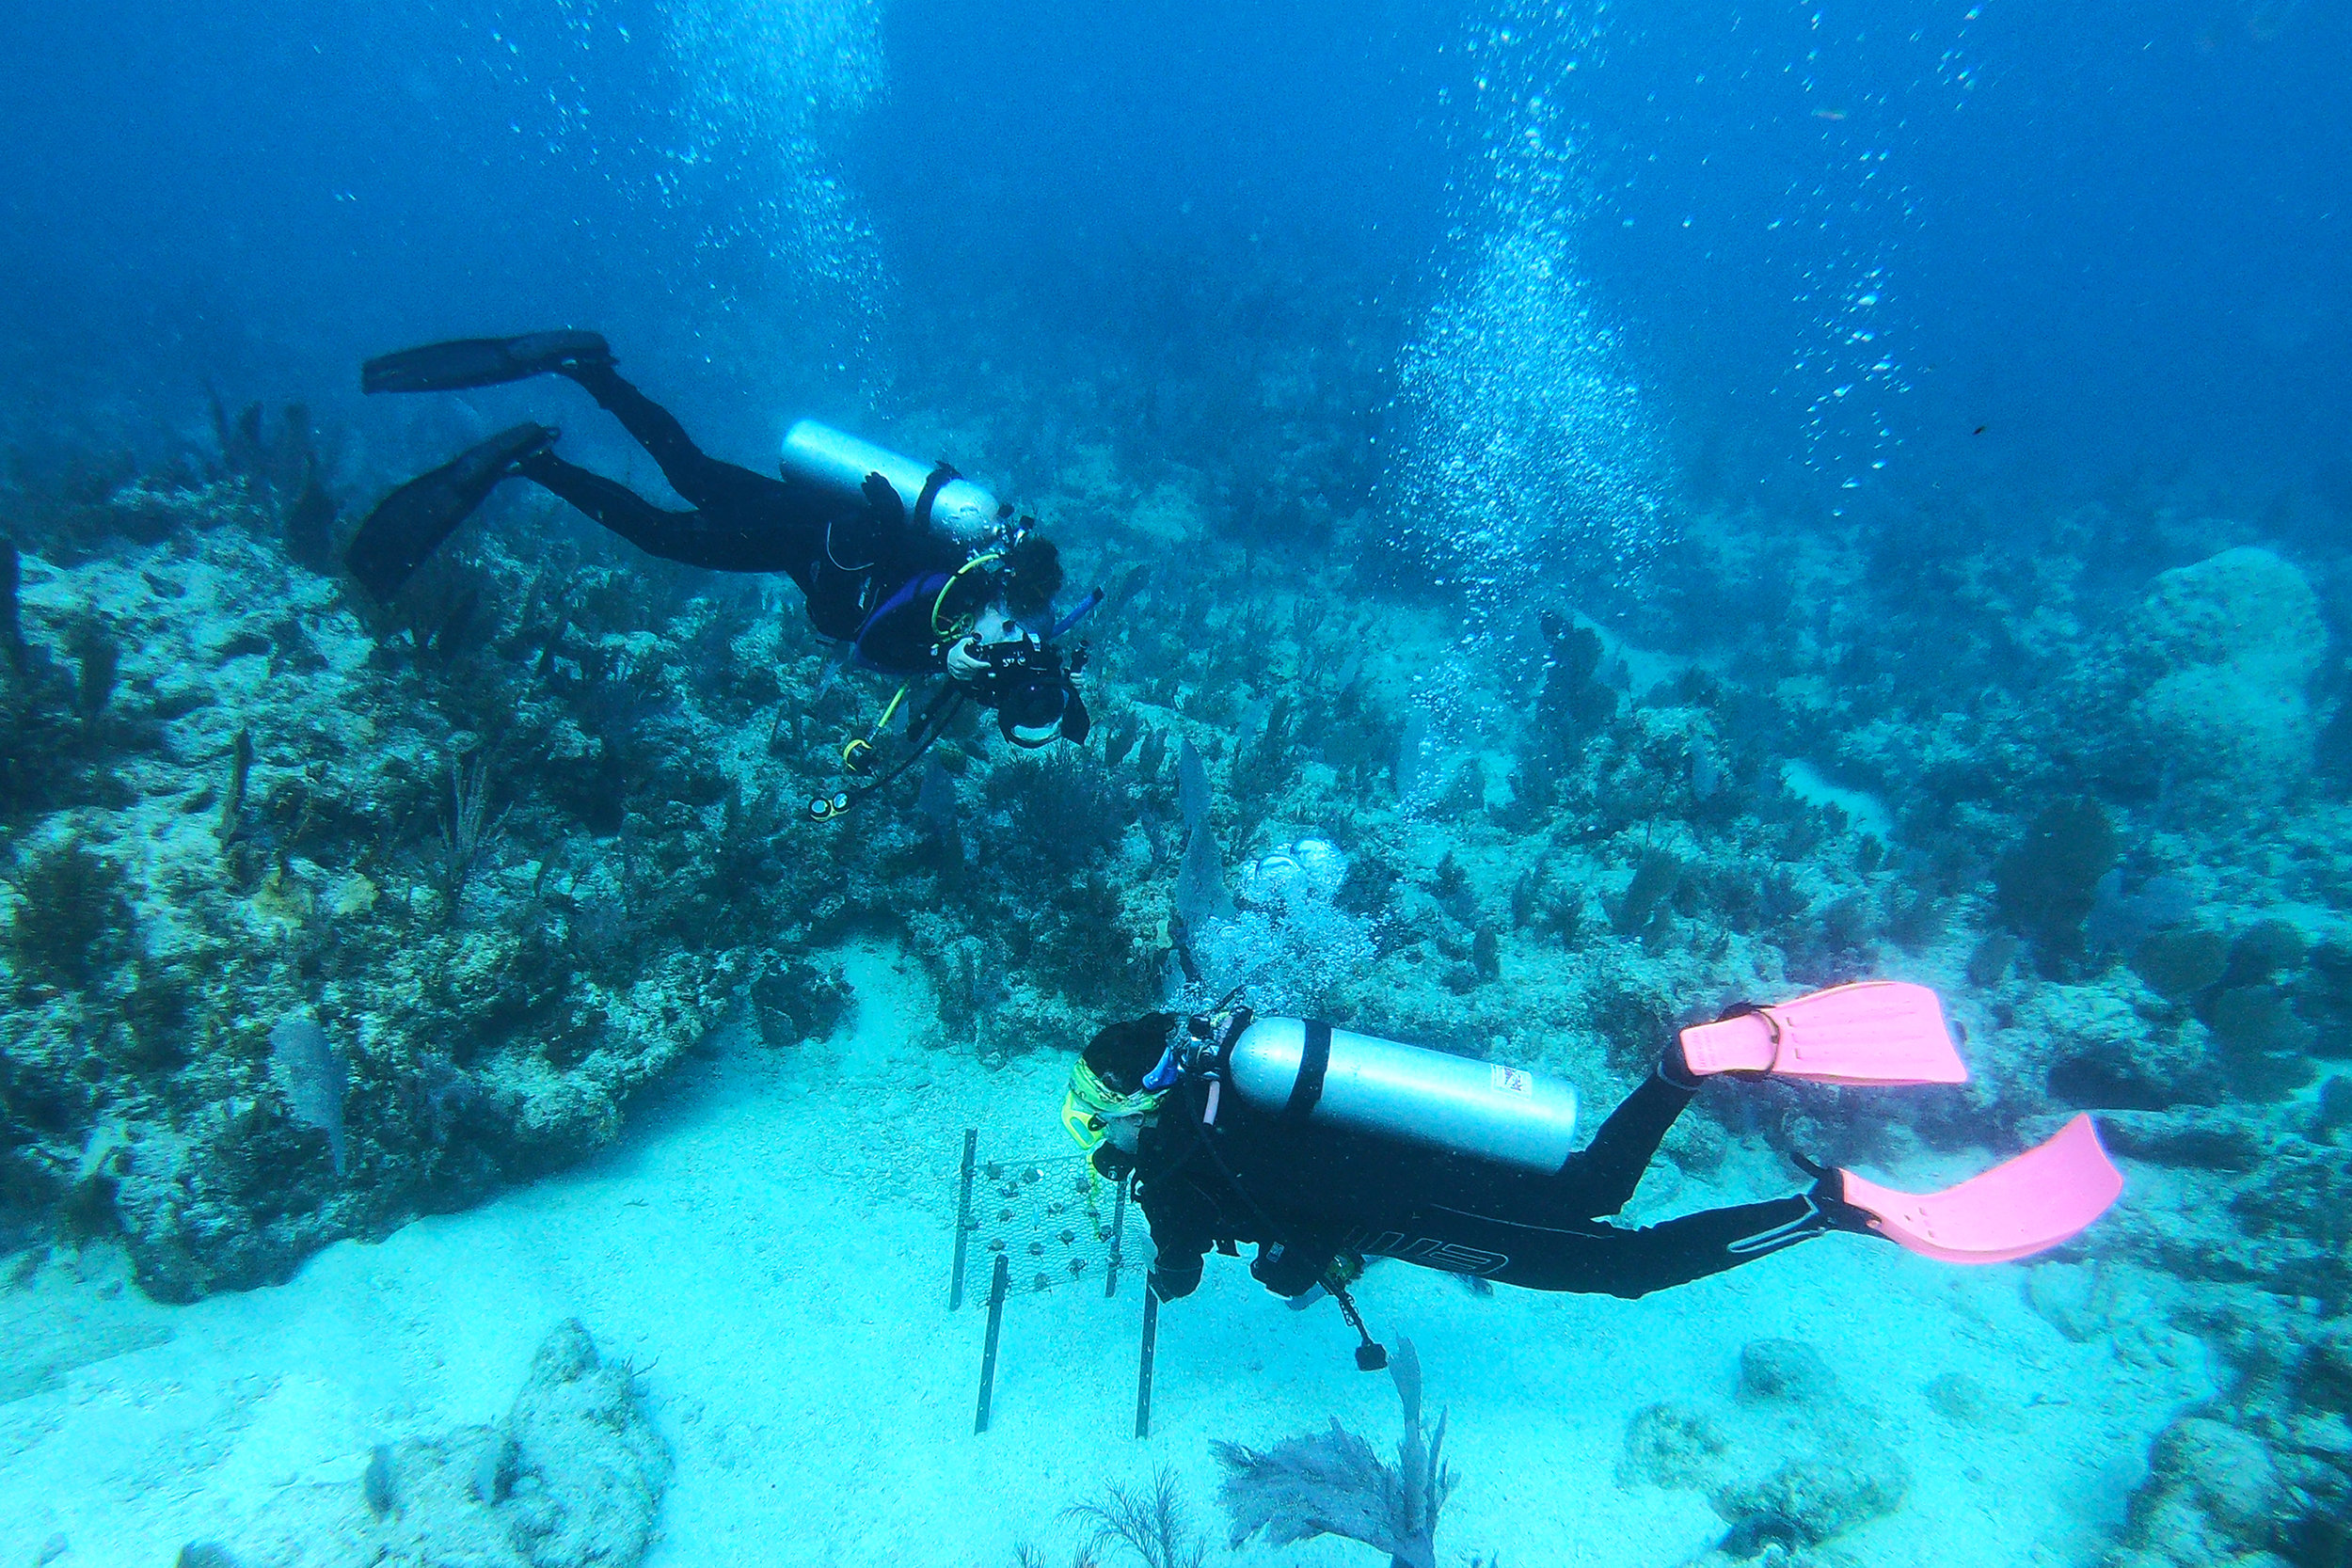 Snapping photos of Kate Gould as she finishes installing a coral table at a reef in Key Largo.